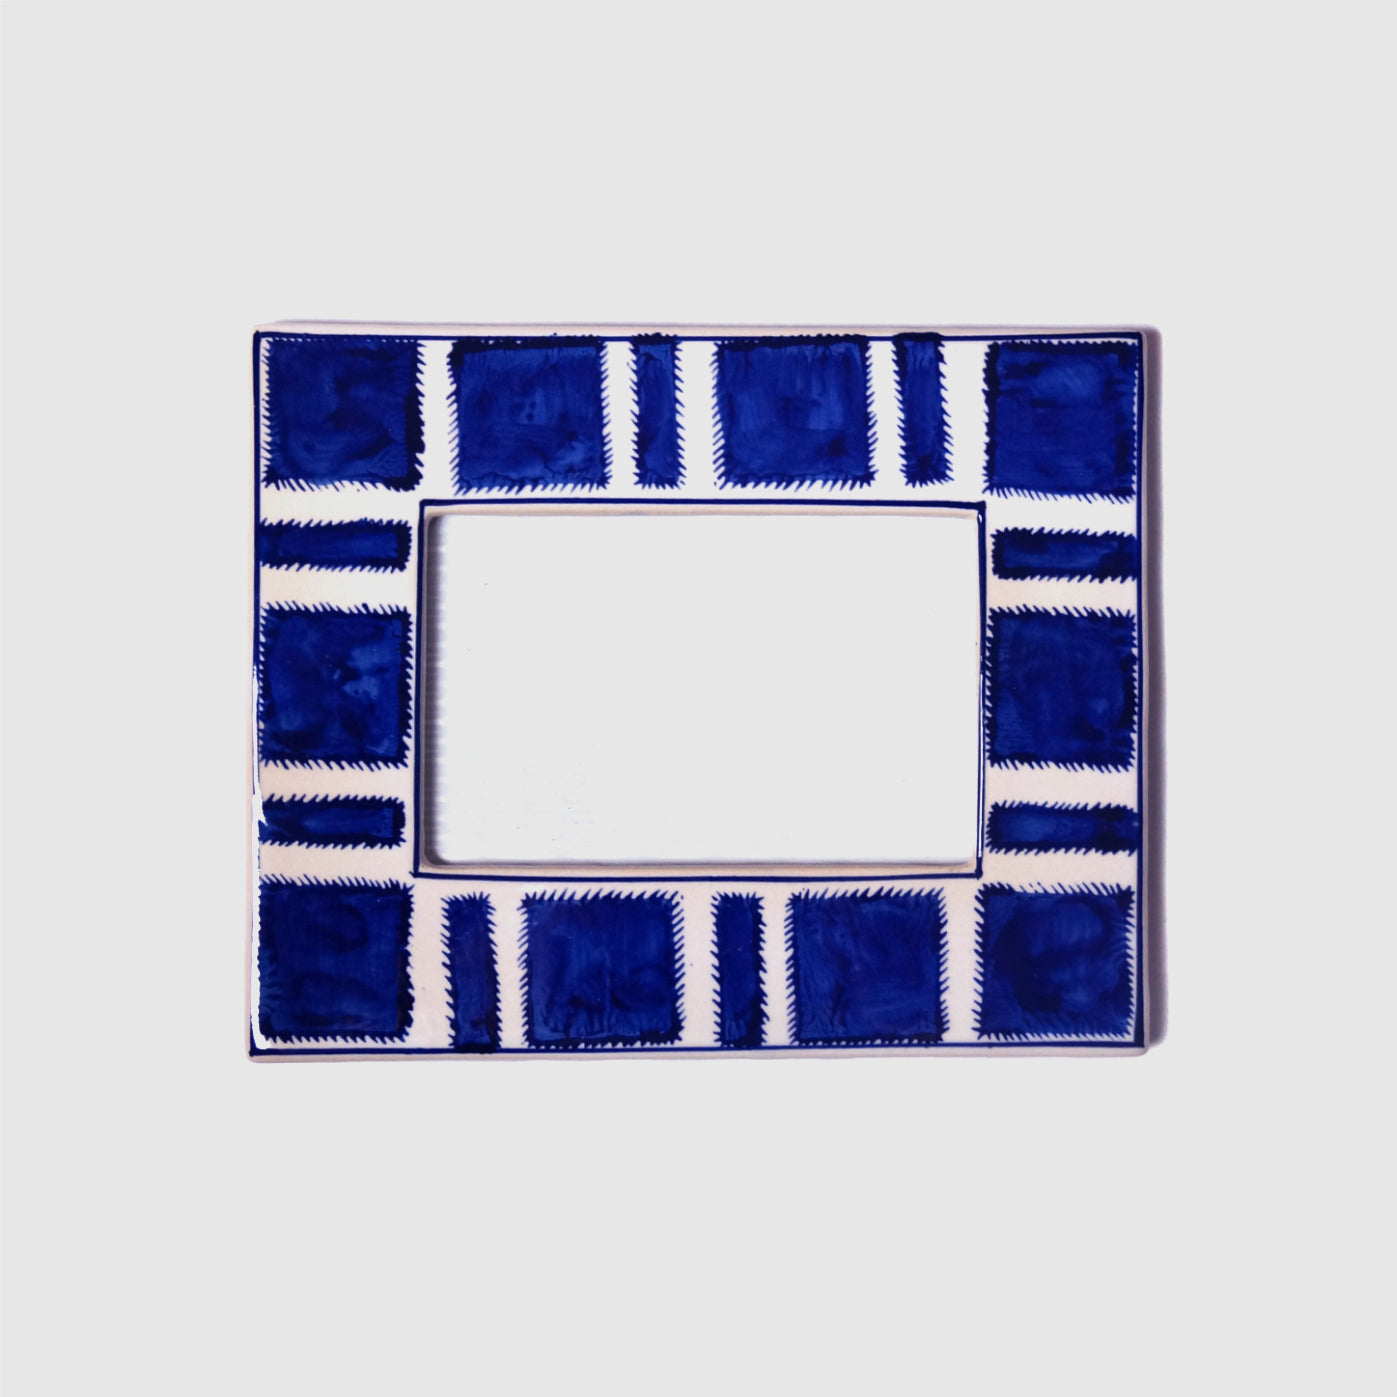 PORTO CERAMIC FRAME - HUNTER & CO.